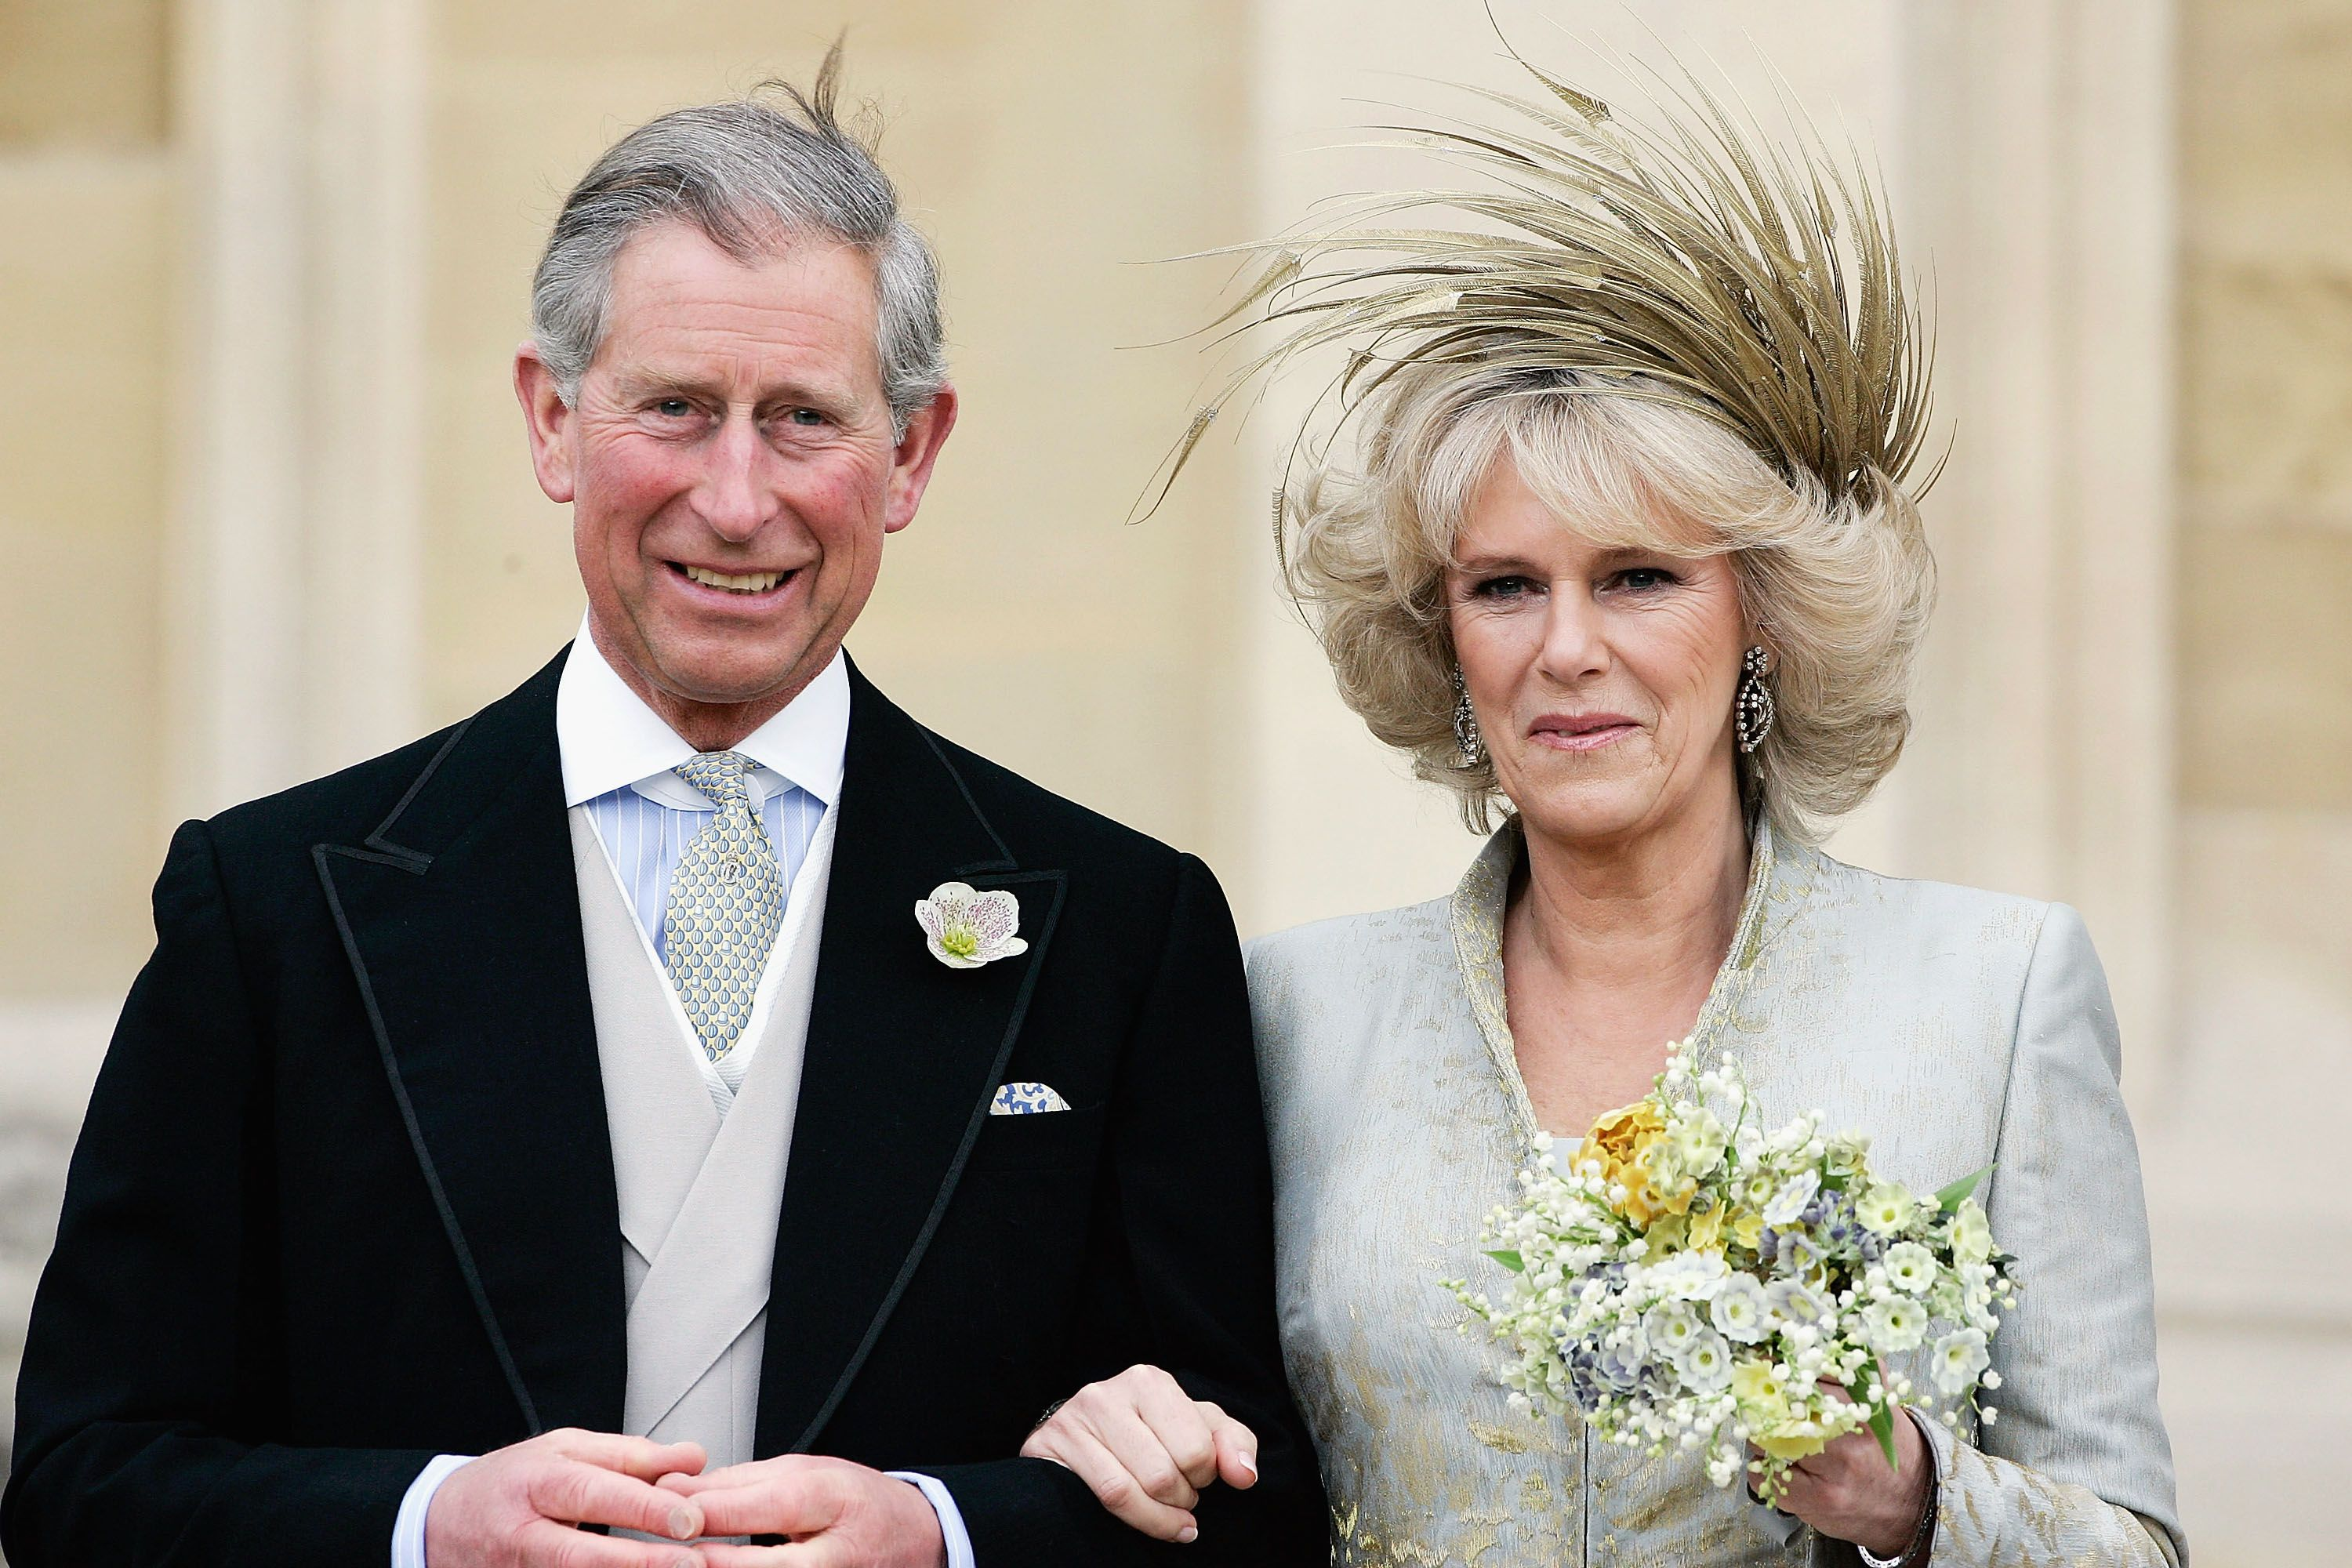 Prince Charles and The Duchess Of Cornwall on their wedding day, April 9, 2005   Source: Getty Images